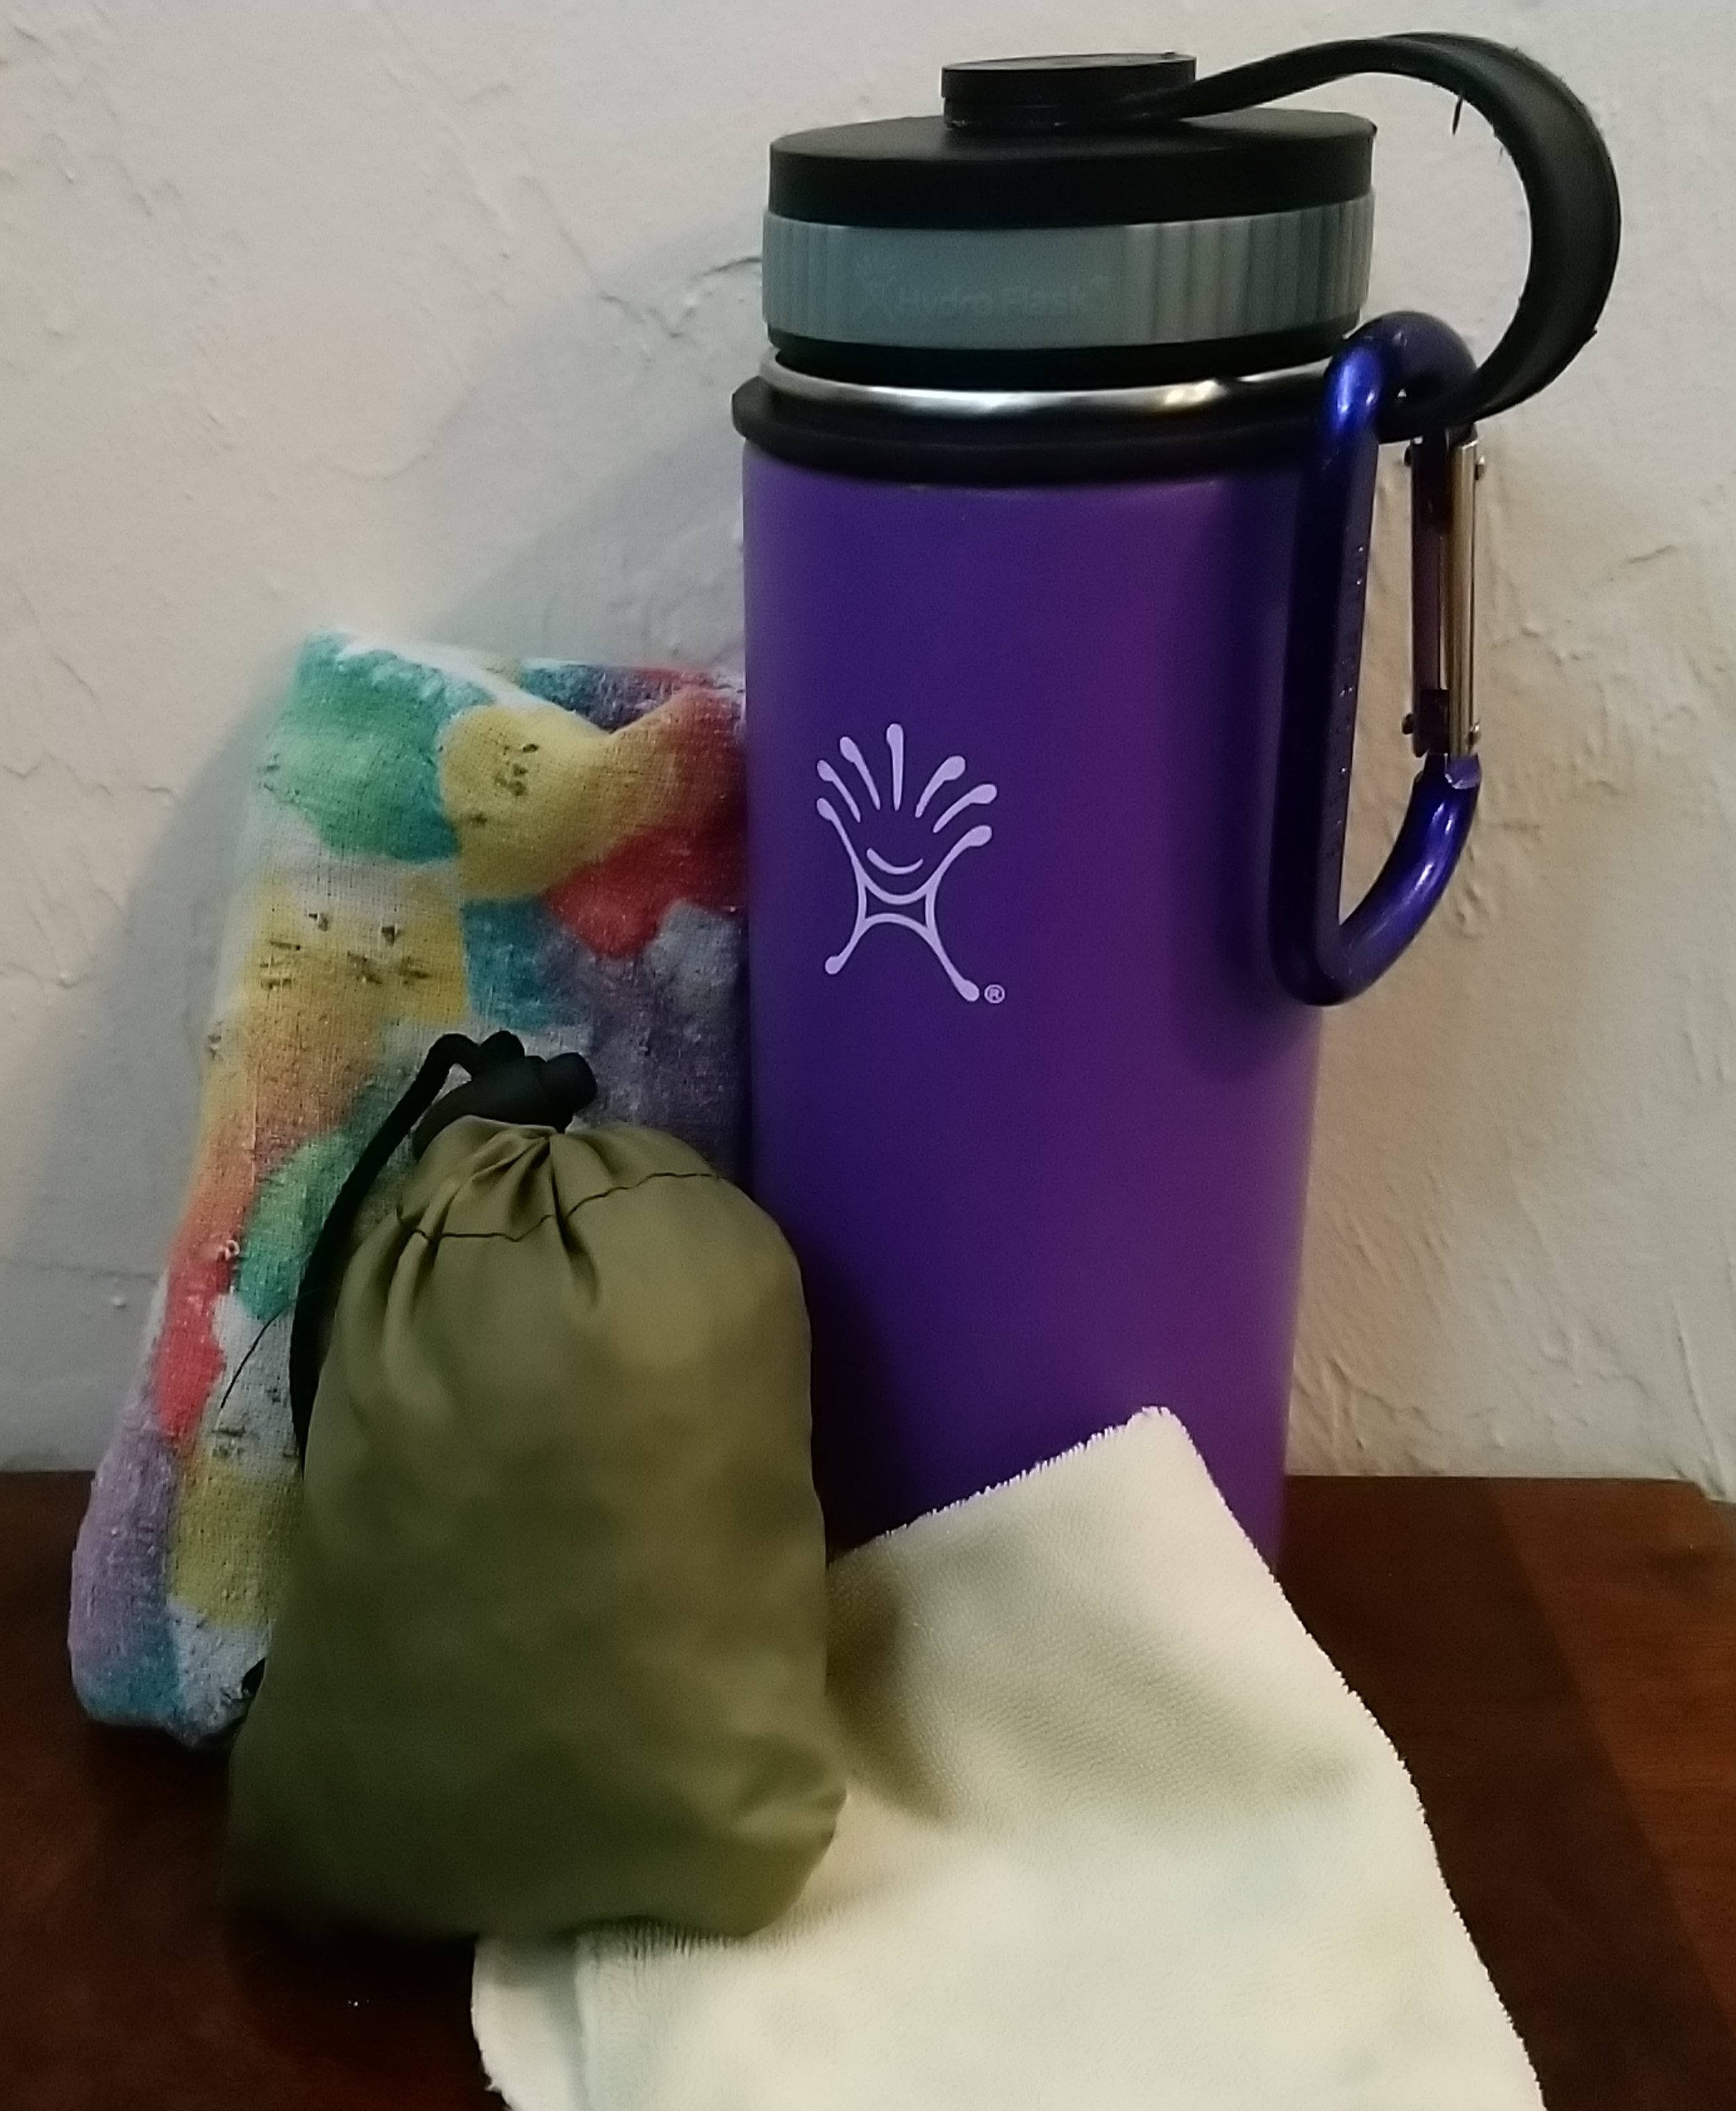 My most used travel items - water bottle, ChicoBag, napkin, and small multi-purpose cloth